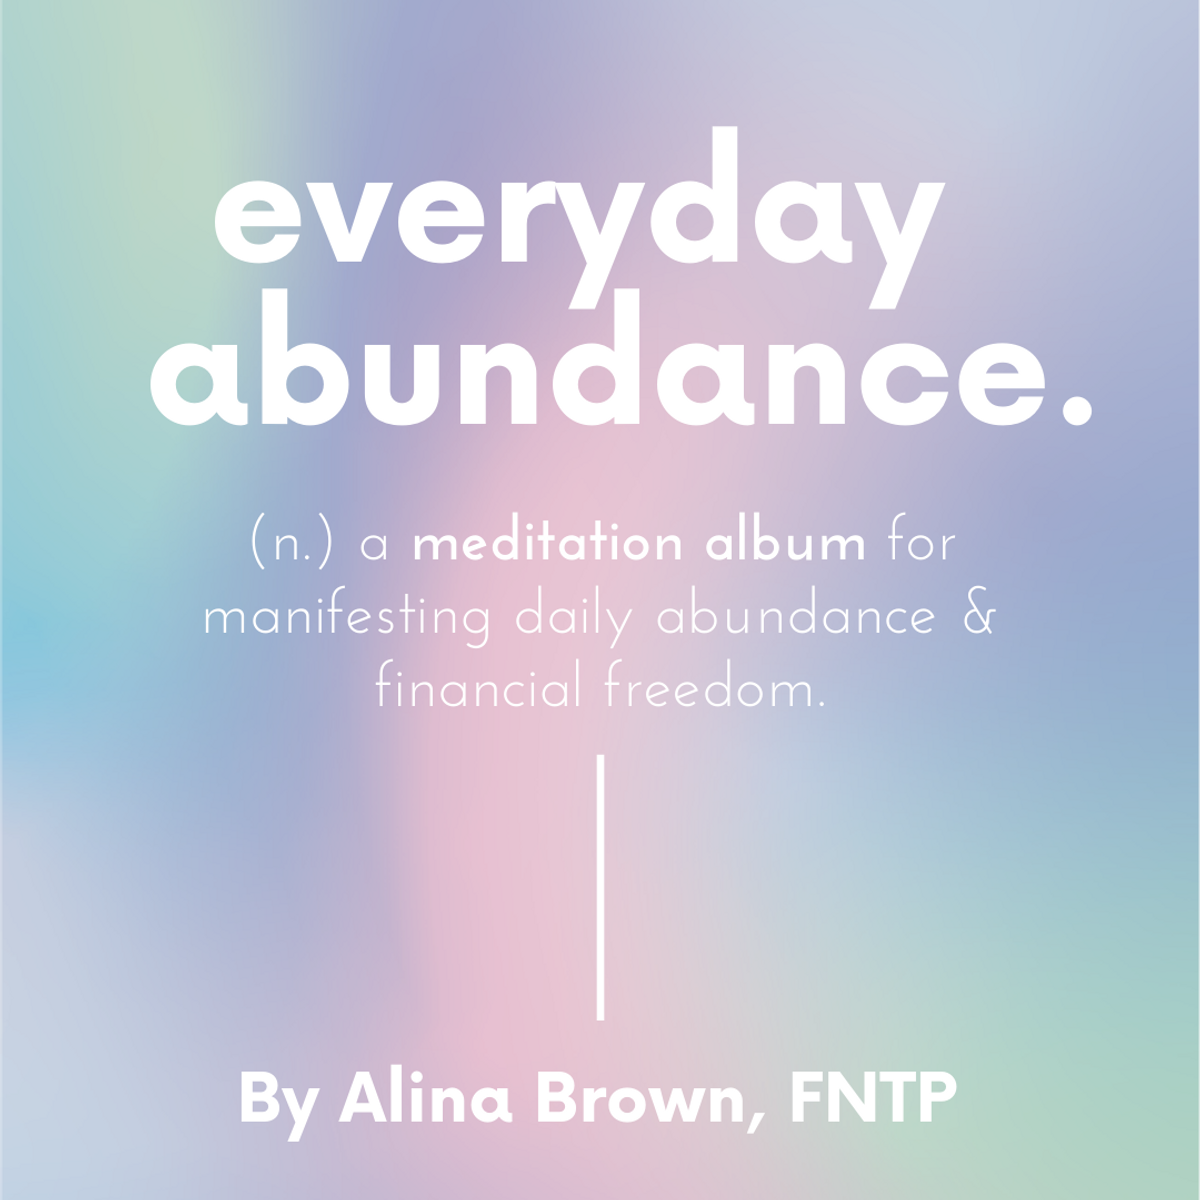 auralign shop everyday abundance guided meditation album